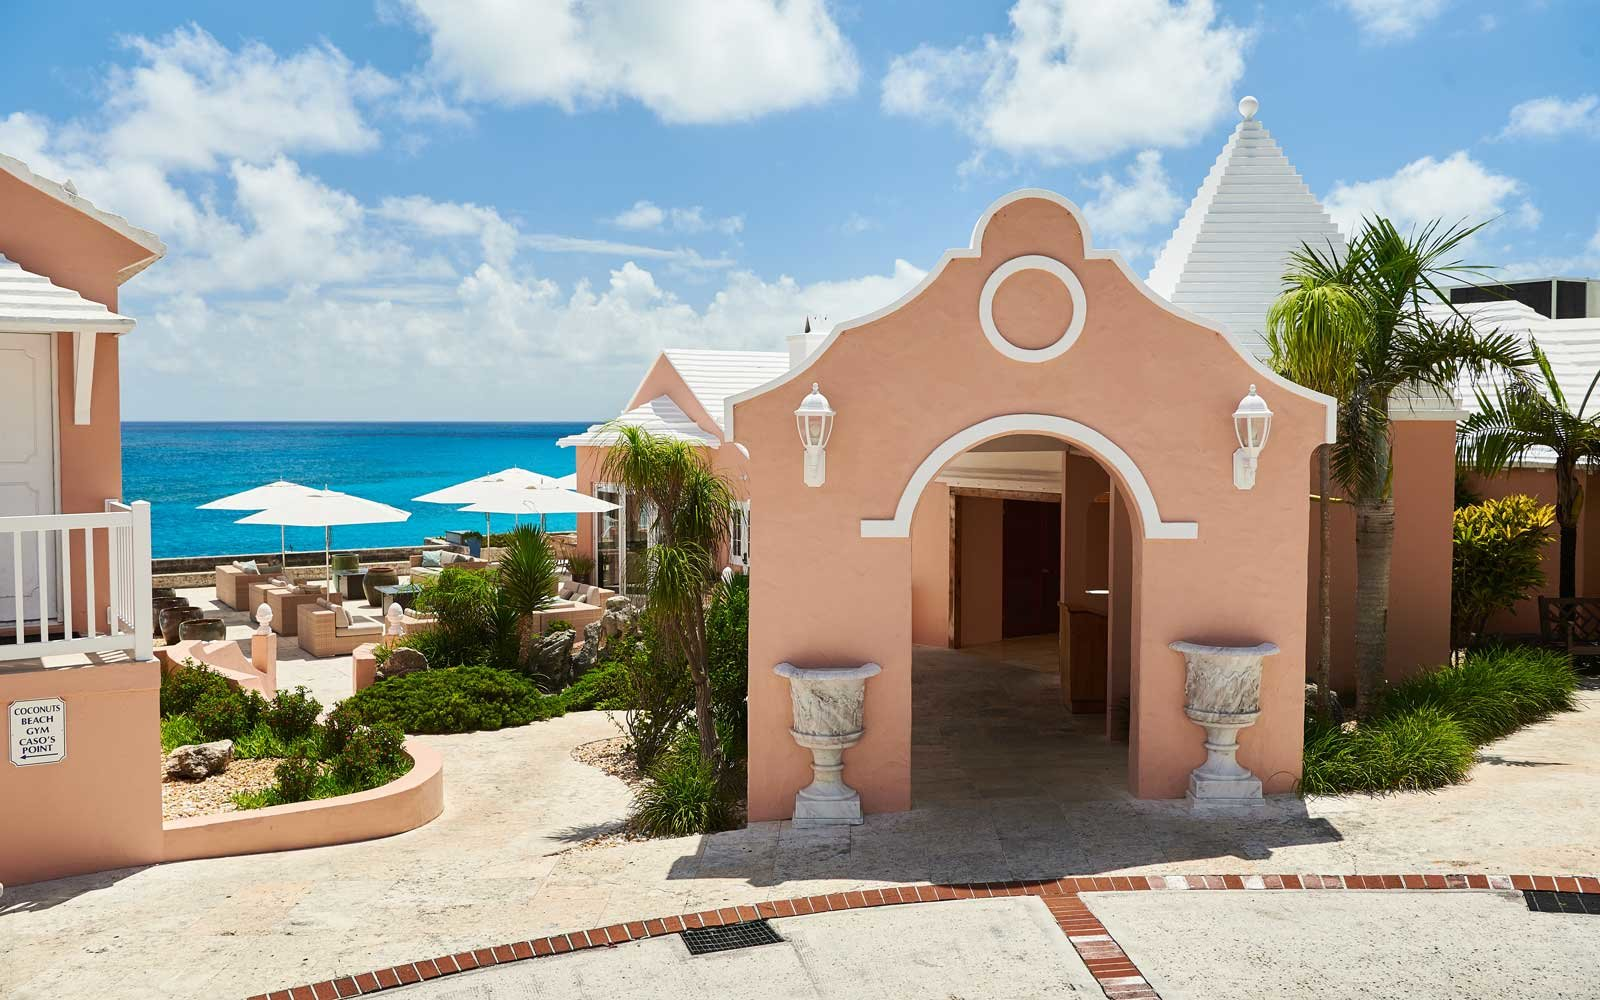 14. Reefs Resort & Club, Bermuda